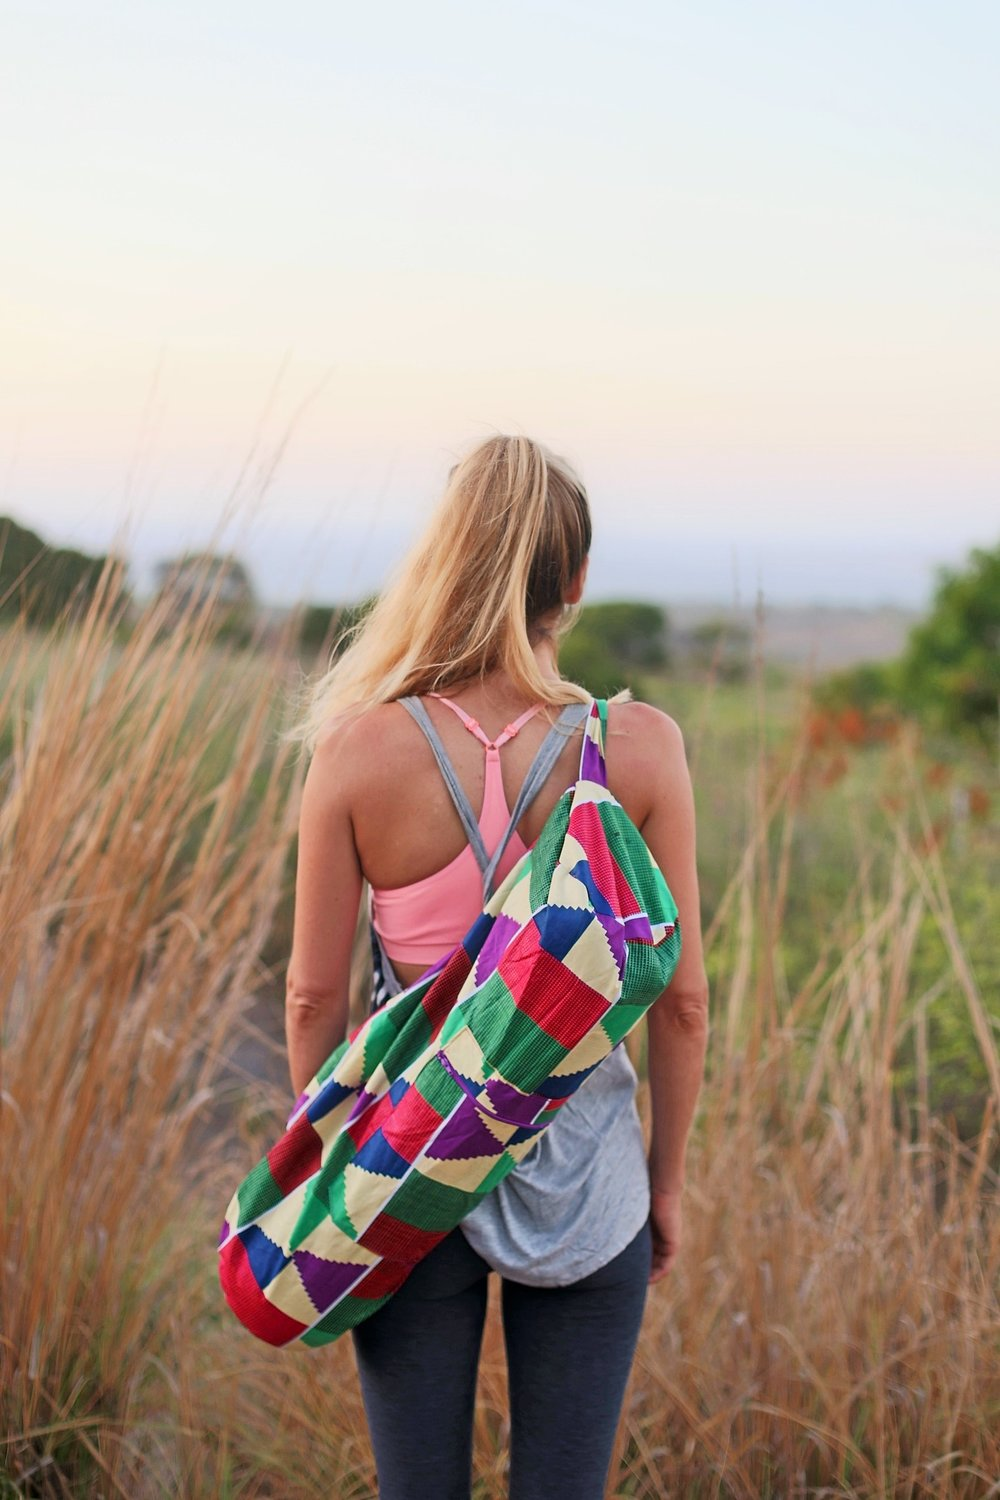 OUR BEAUTIFUL NEW YOGA BAGS